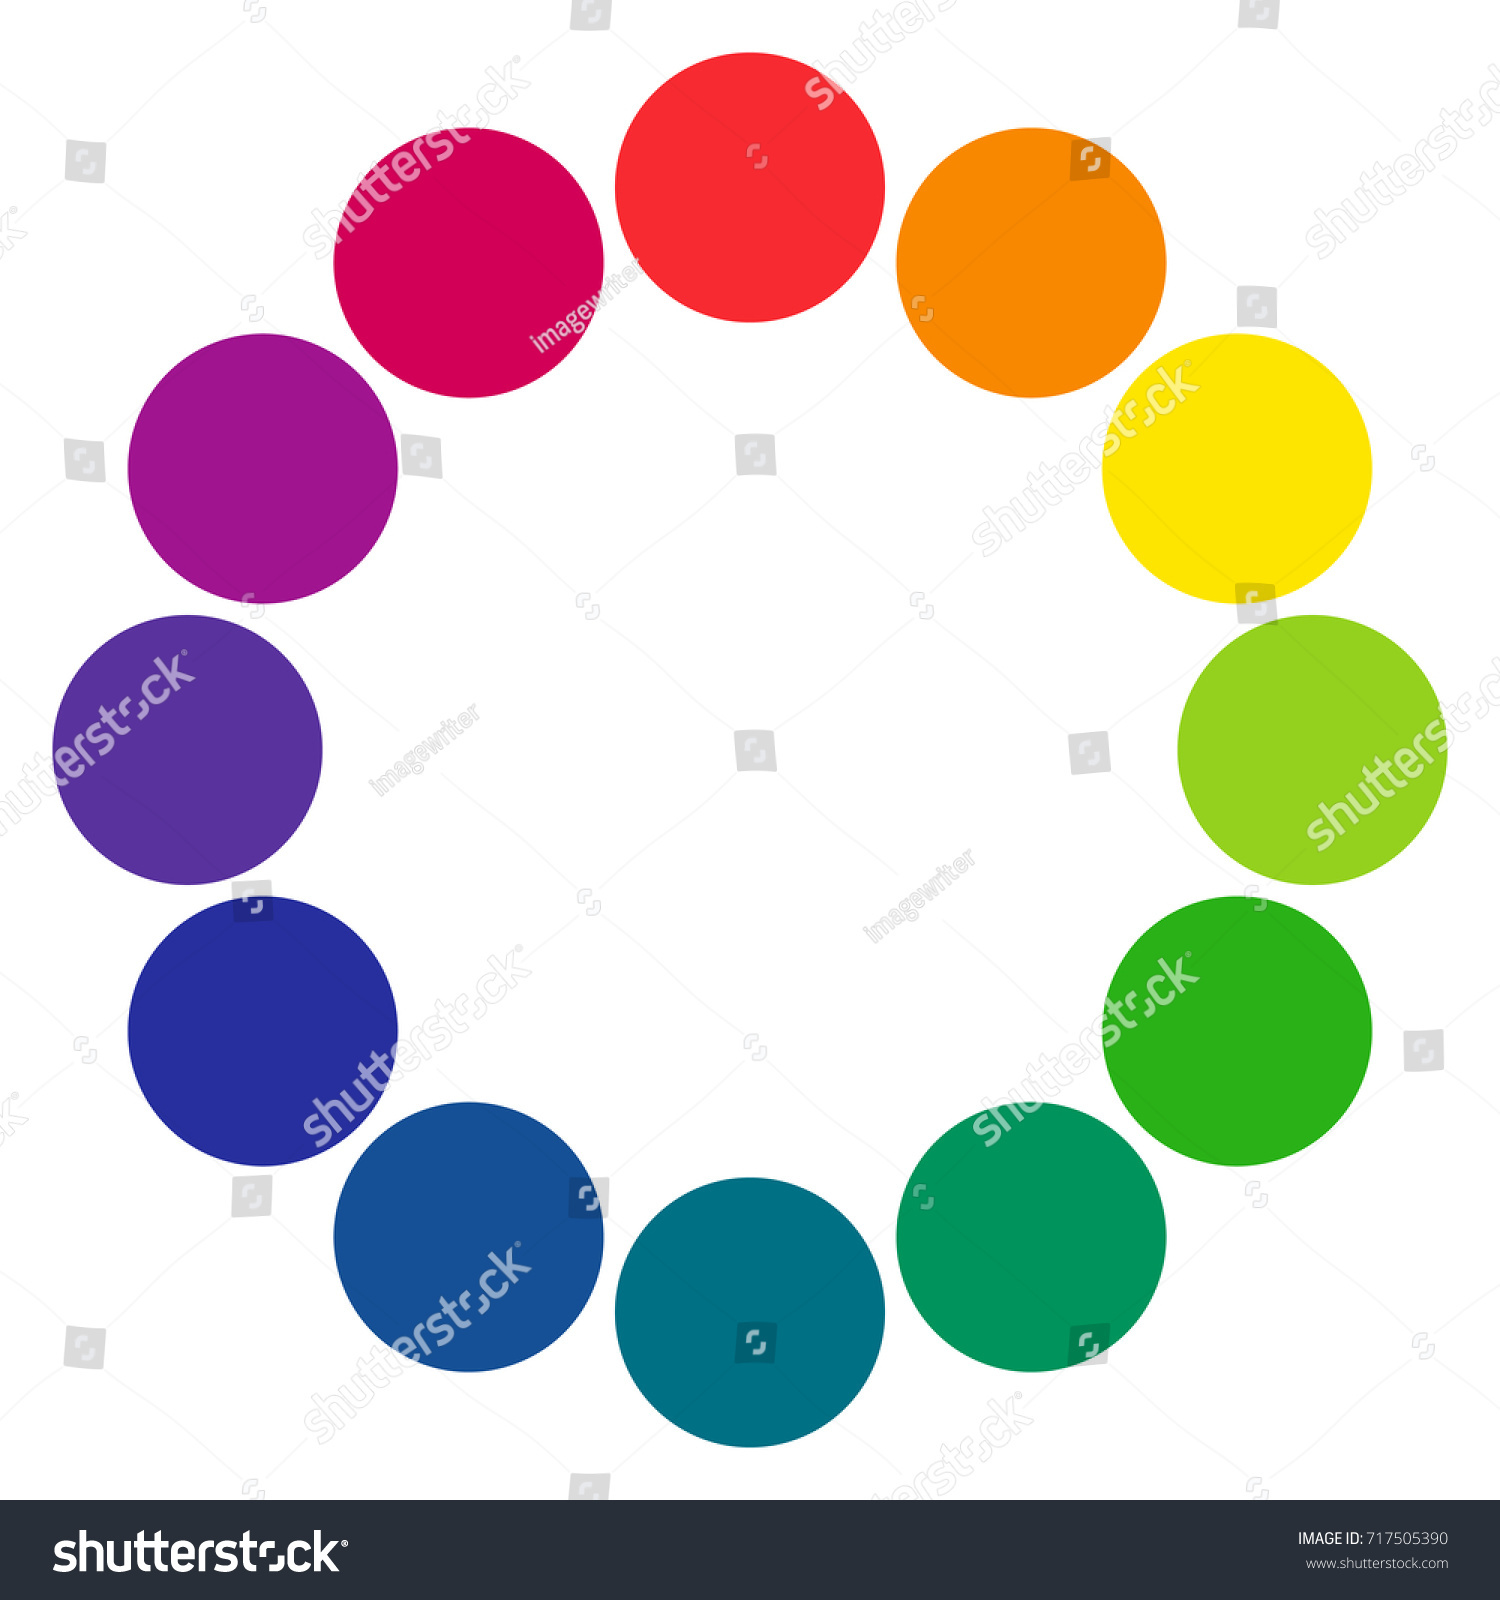 Twelve Part RGB Color Wheel Composed Of Circles Complementary Colors Are Opposite Each Other